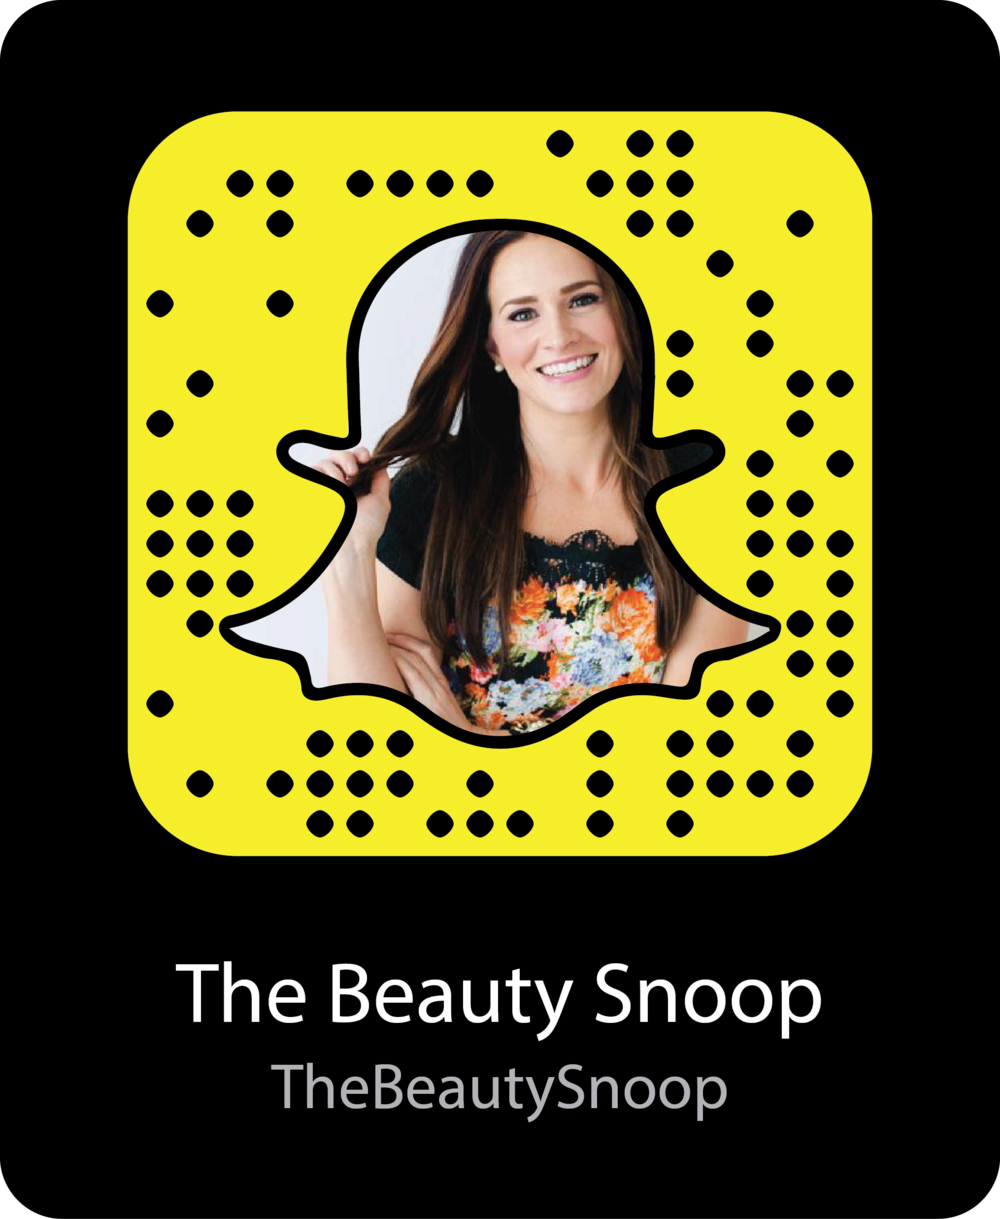 TheBeautySnoop-Beauty-Bloggers-snapchat-snapcode.png